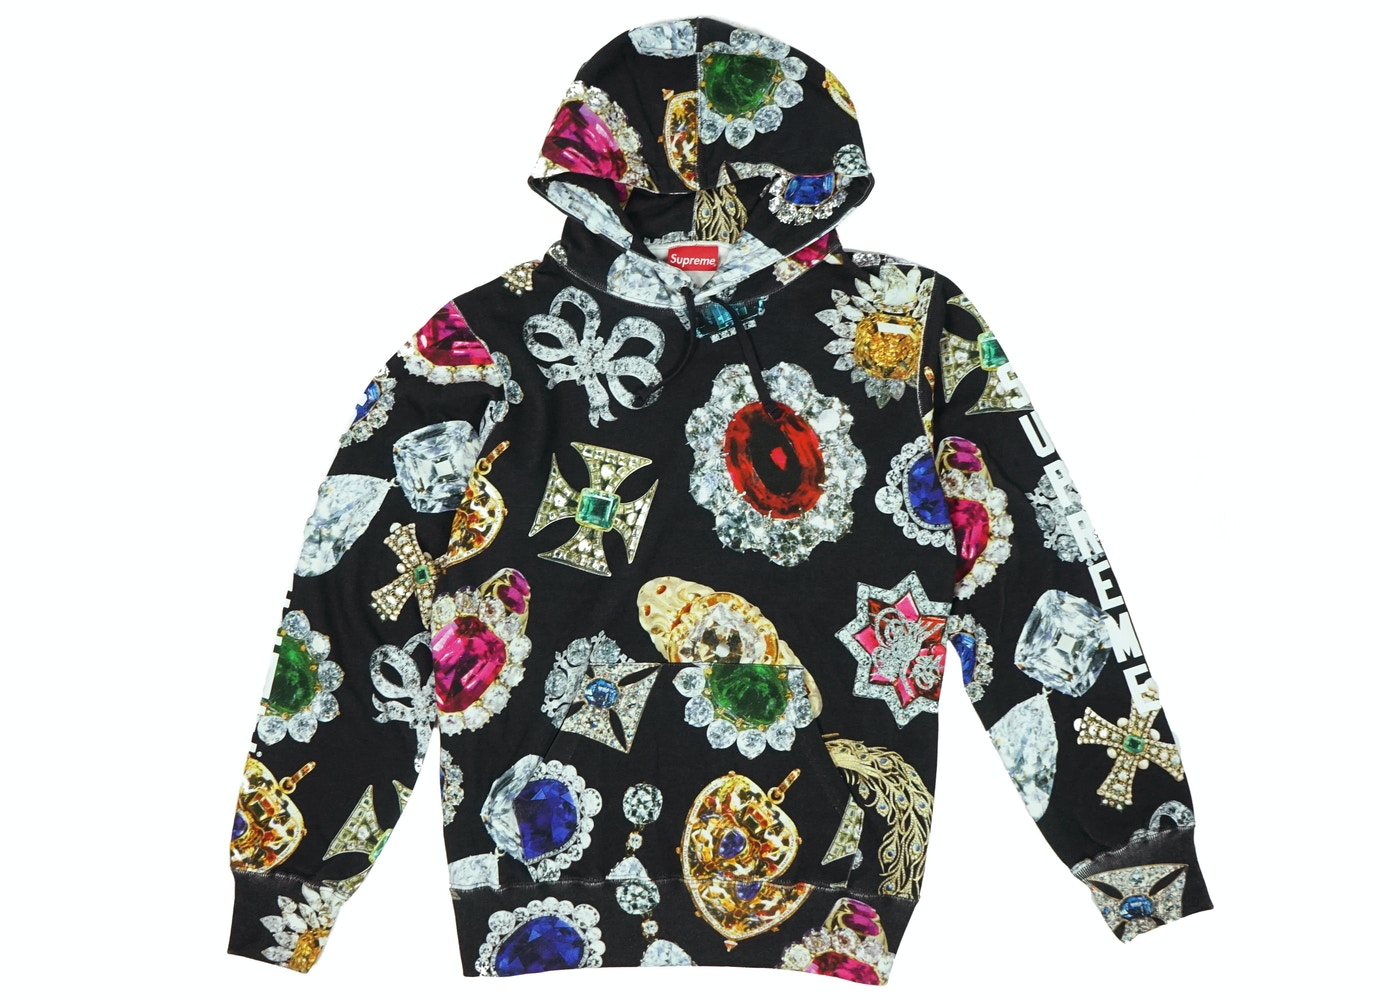 fb7e2de68d09 Supreme Jewels Hooded Sweatshirt Black - FW18